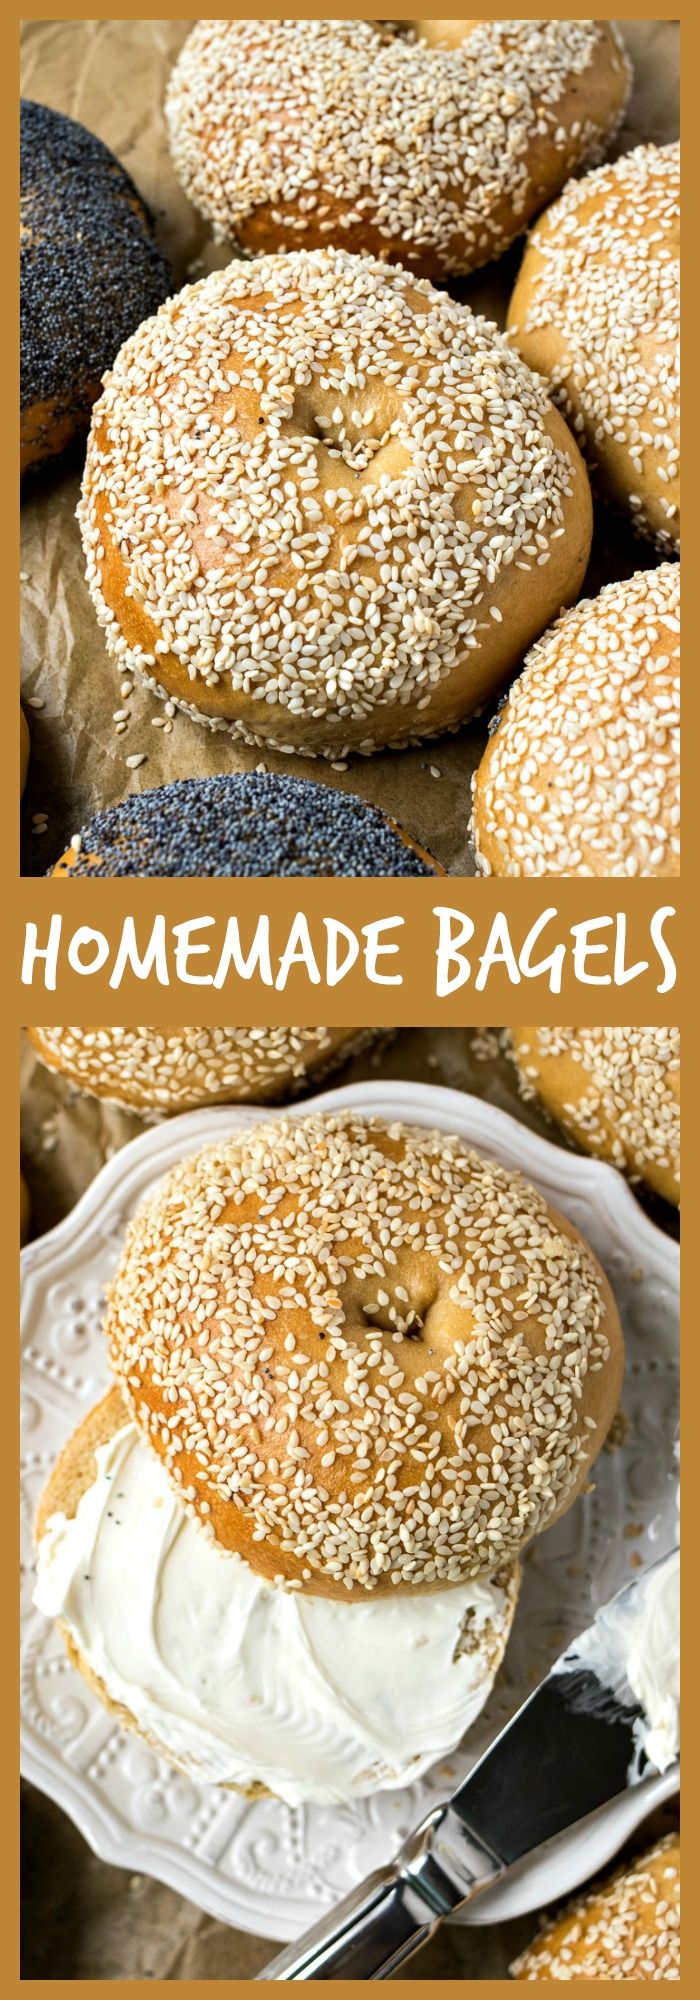 Homemade Bagels photo collage